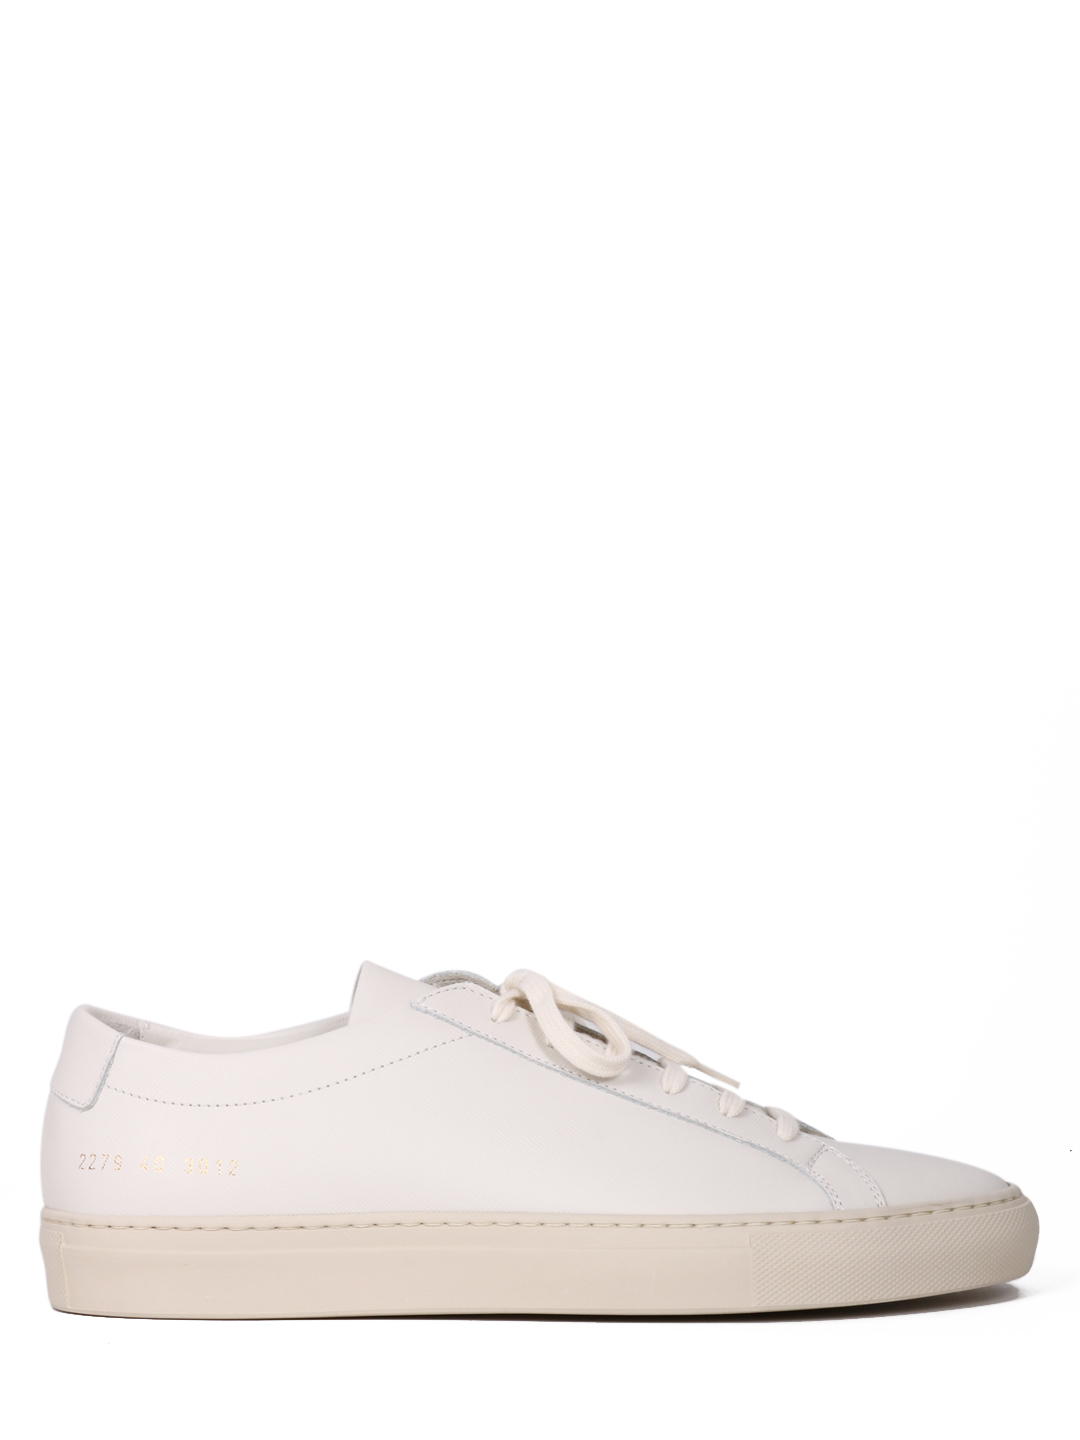 Common Projects SNEAKER PANNA